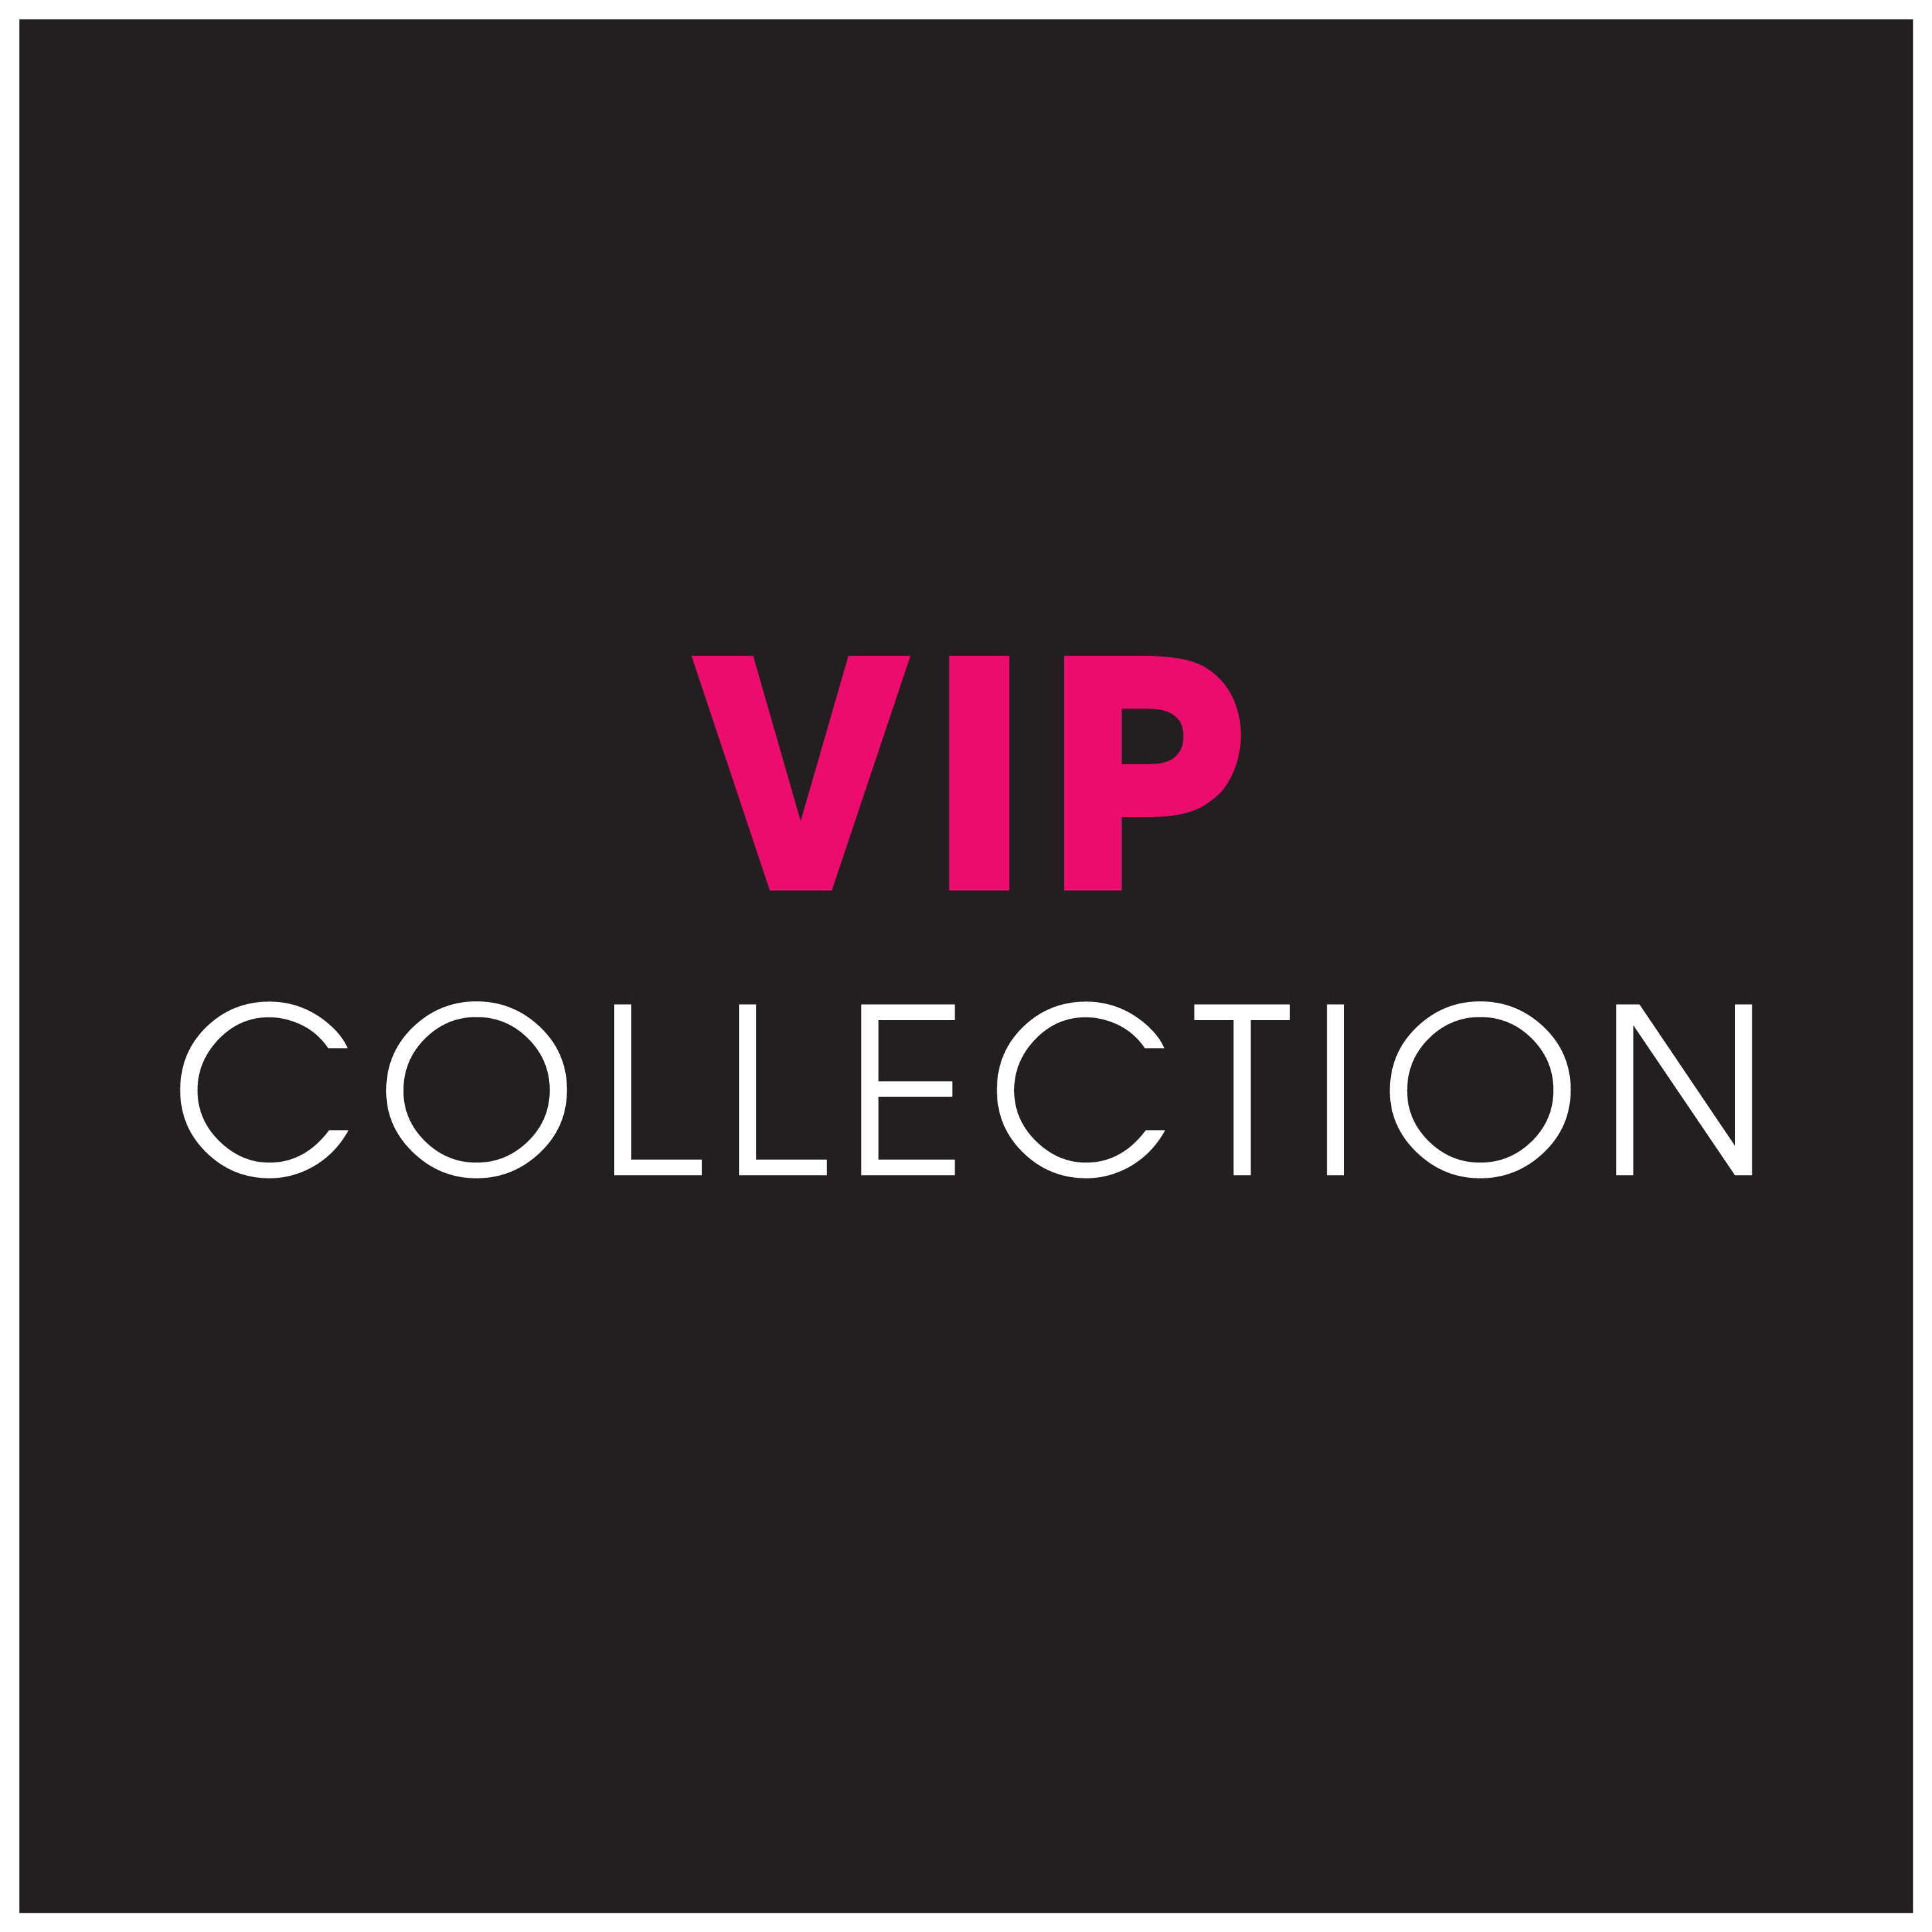 VIP - Collection